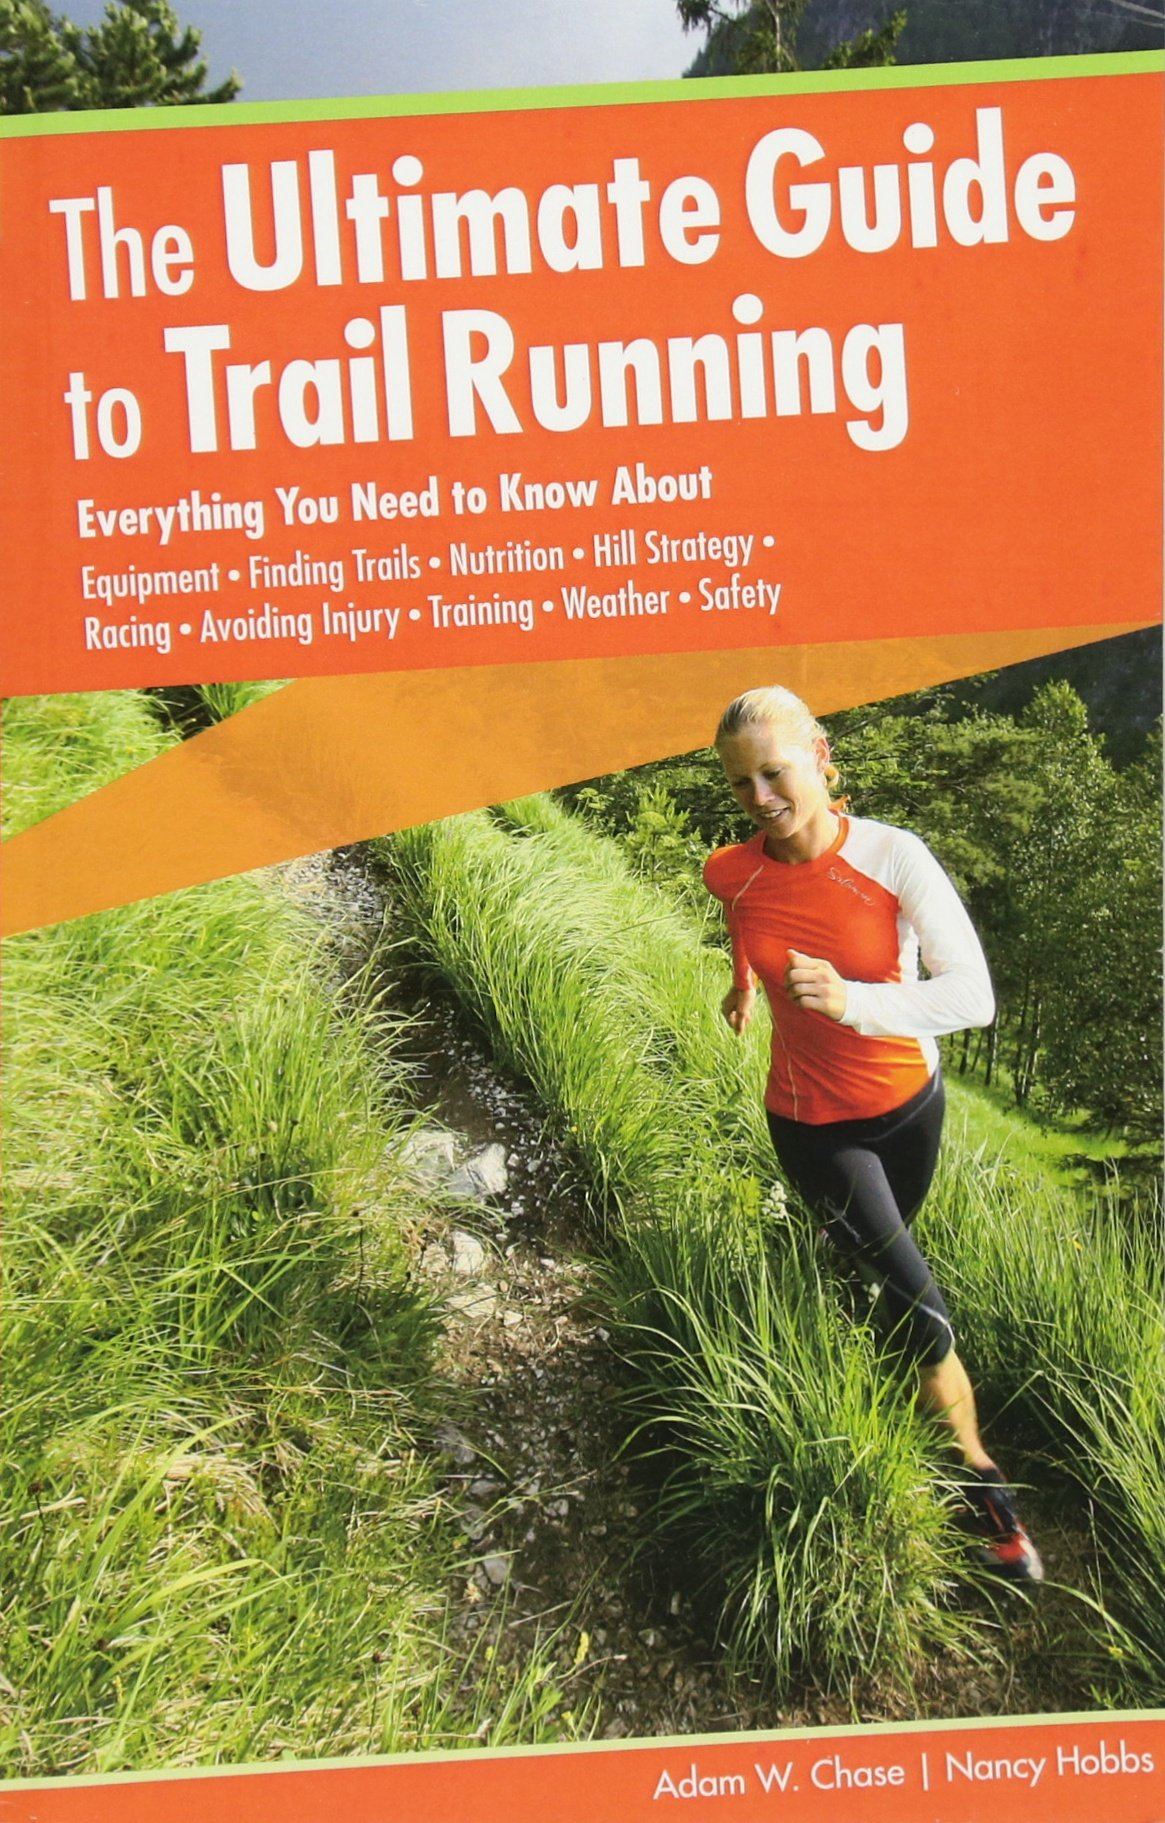 Download Ultimate Guide to Trail Running: Everything You Need To Know About Equipment * Finding Trails * Nutrition * Hill Strategy * Racing * Avoiding Injury * Training * Weather * Safety PDF